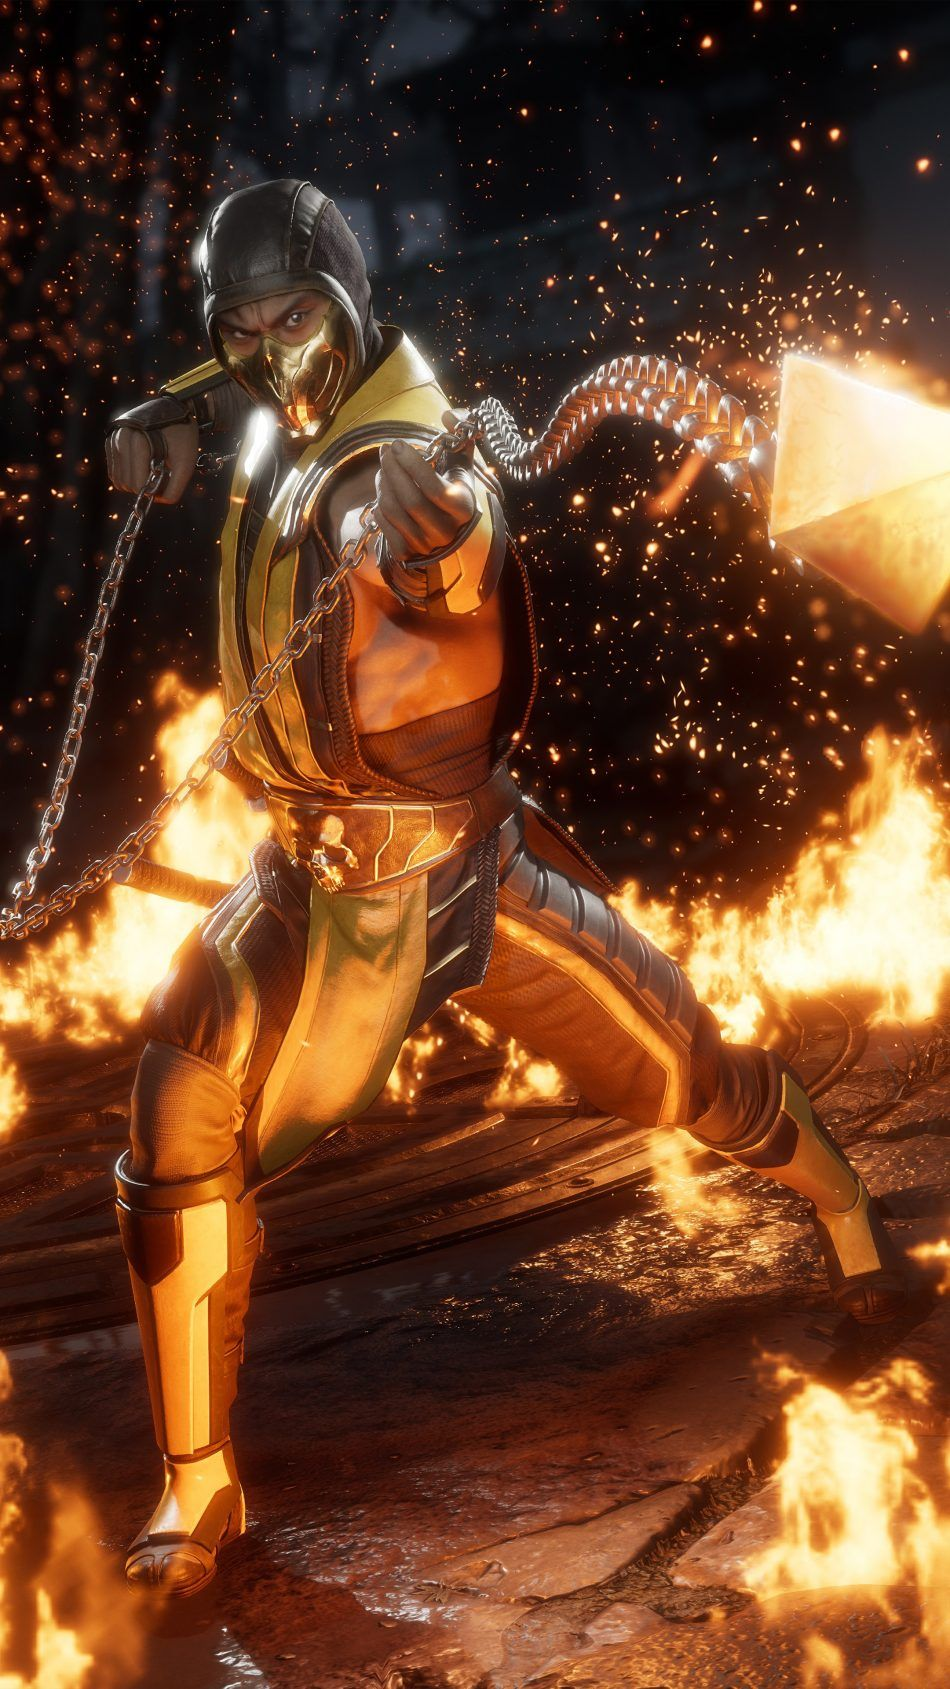 Scorpion Mortal Kombat 11 Scorpion mortal kombat, Kitana